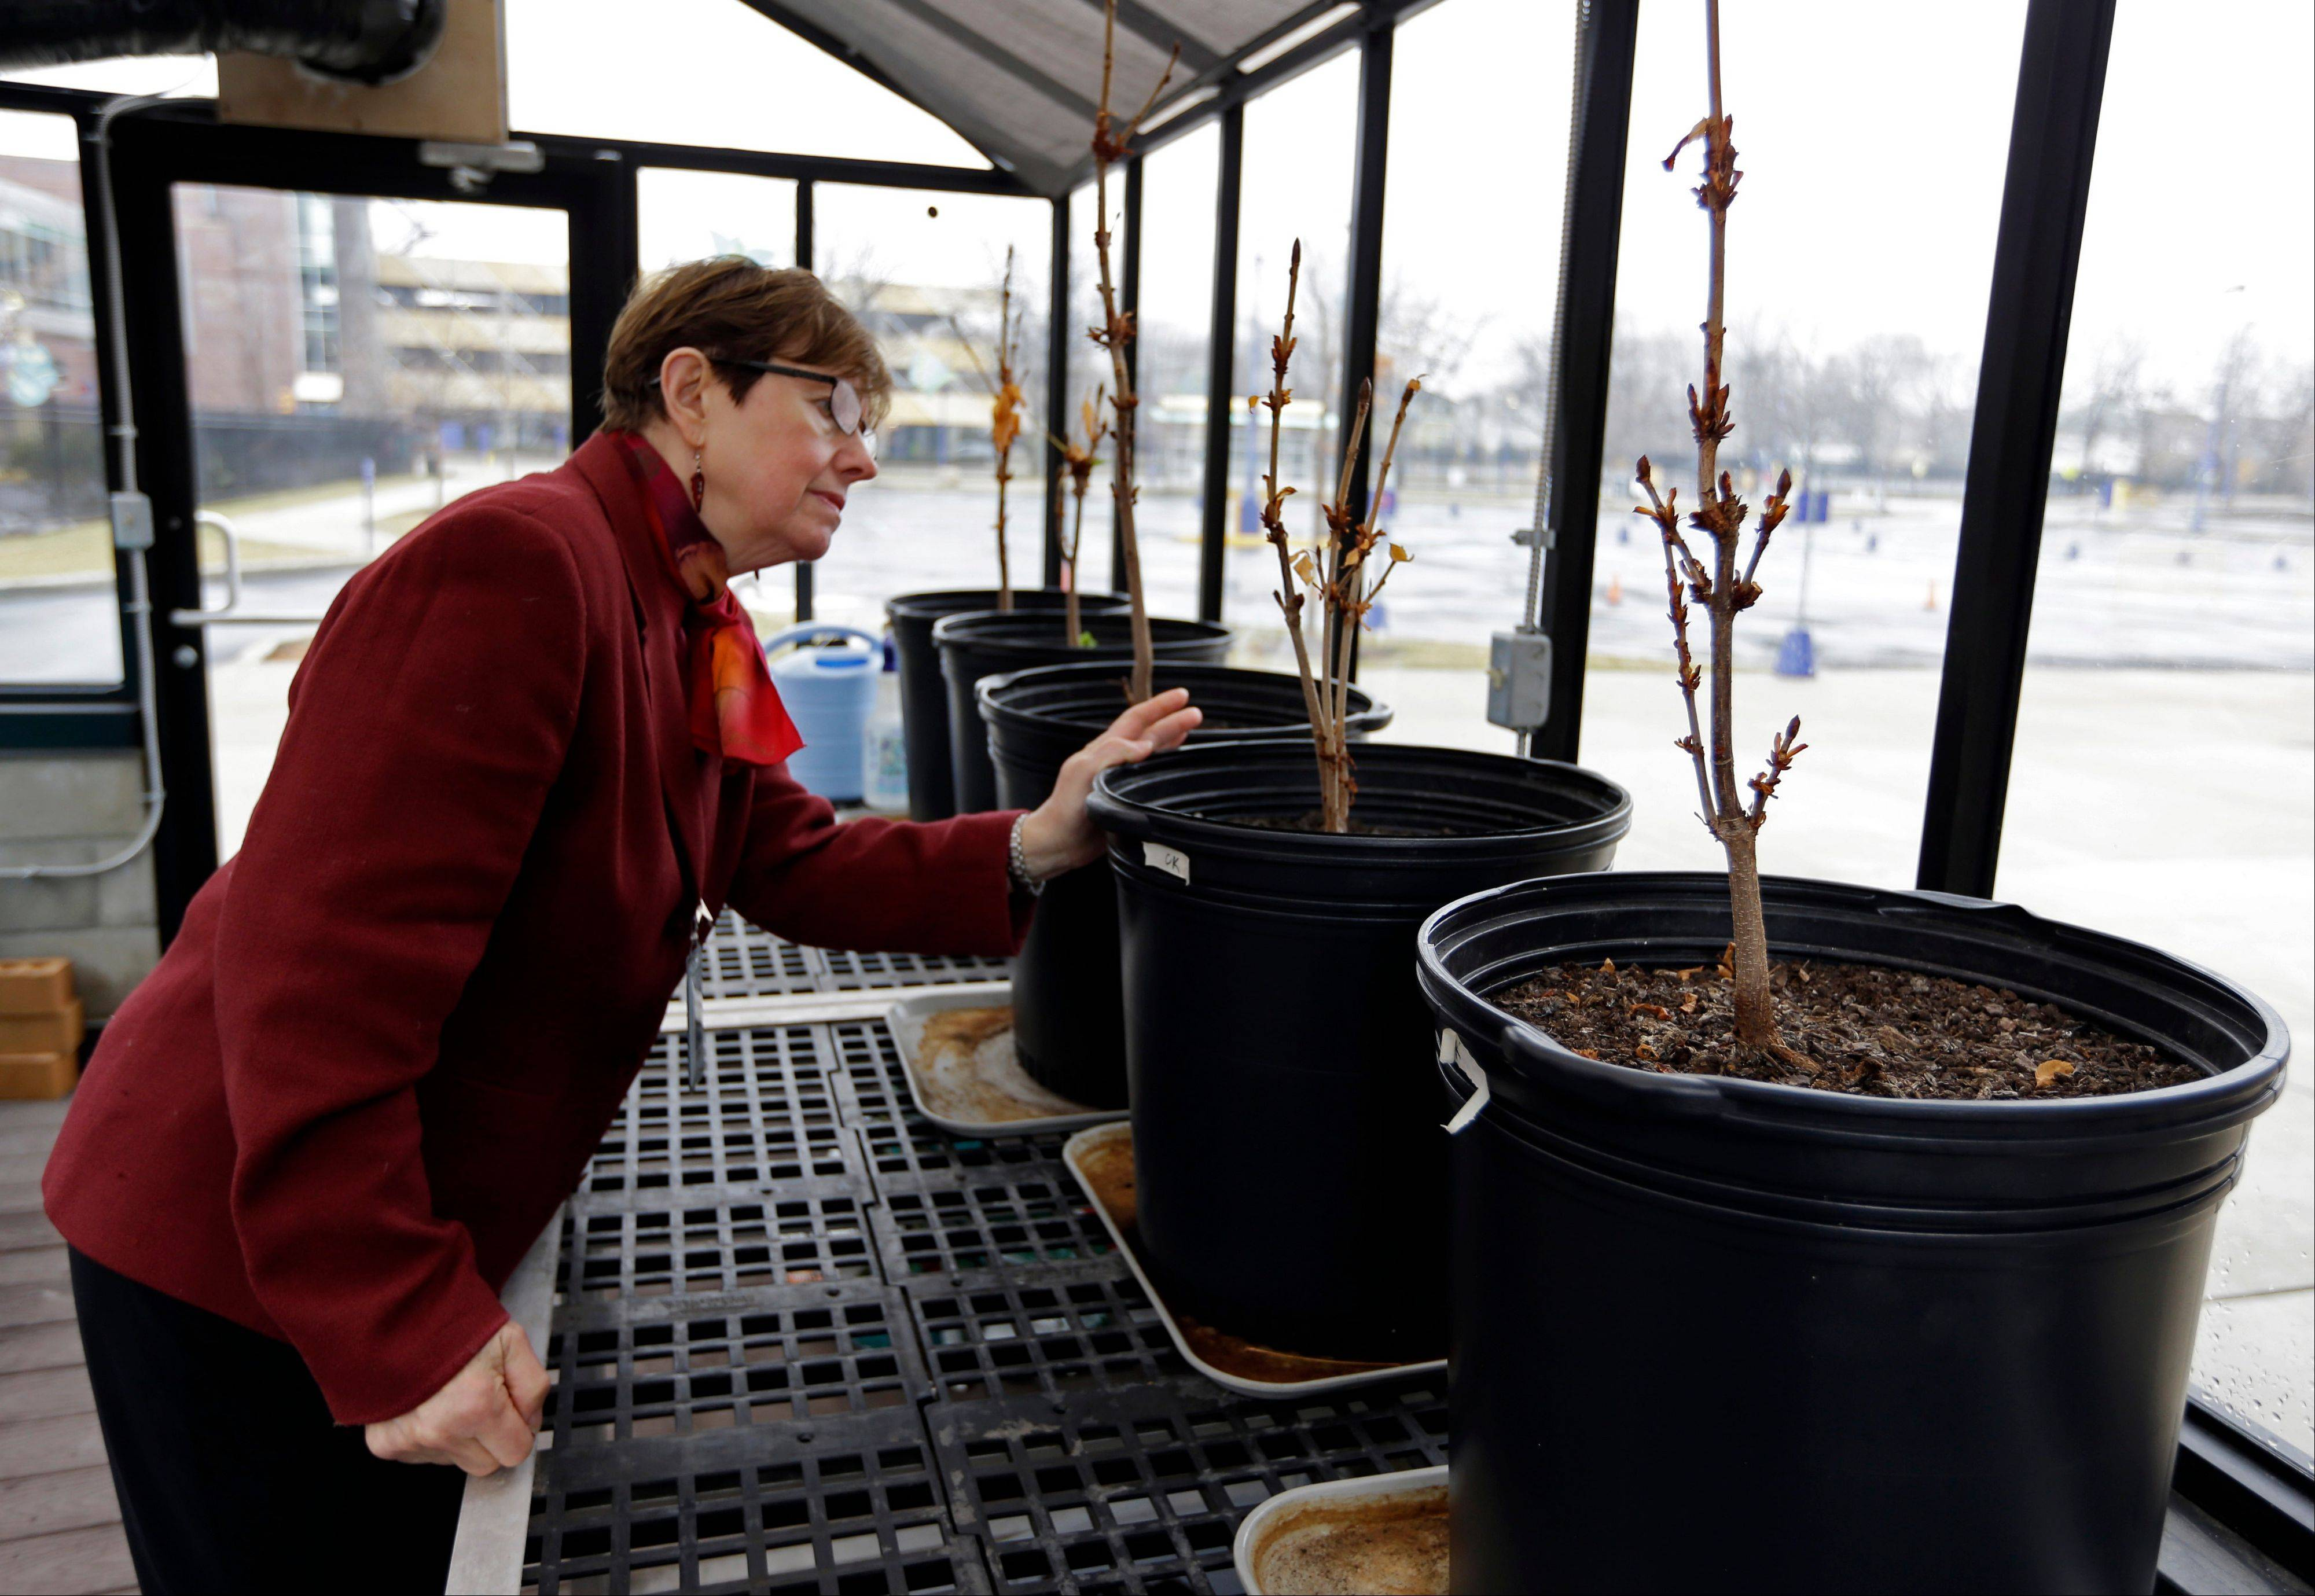 Mary Fortney, learning resource development manager at the Indianapolis Children�s Museum, looks over chestnut saplings from the tree outside Anne Frank�s hiding spot in Amsterdam being cared for in the museum�s greenhouse in Indianapolis. Eleven saplings grown from seeds taken from the massive chestnut tree that stood outside the home in which Frank and her family hid are being distributed to museums, schools, parks and Holocaust remembrance centers through a project led by The Anne Frank Center USA.